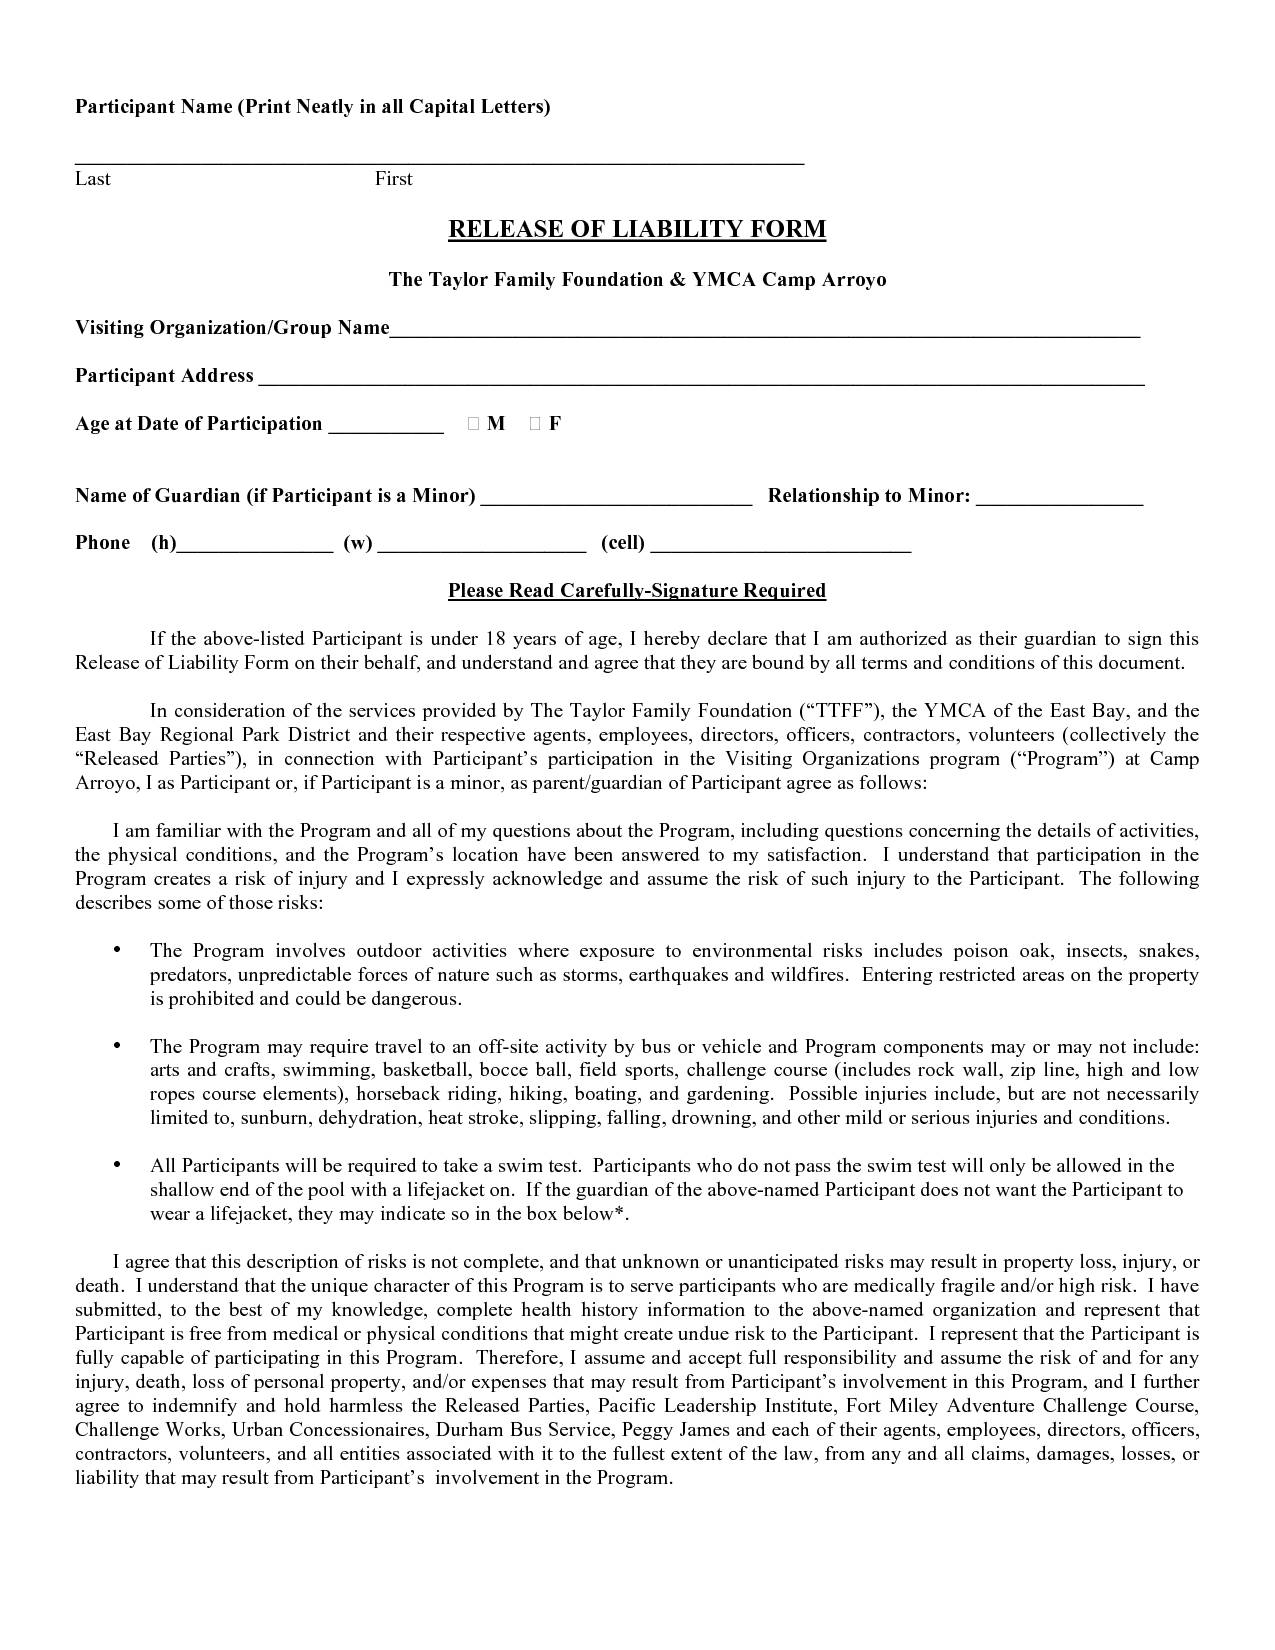 Liability Waiver Template Free Templates 16733 Resume